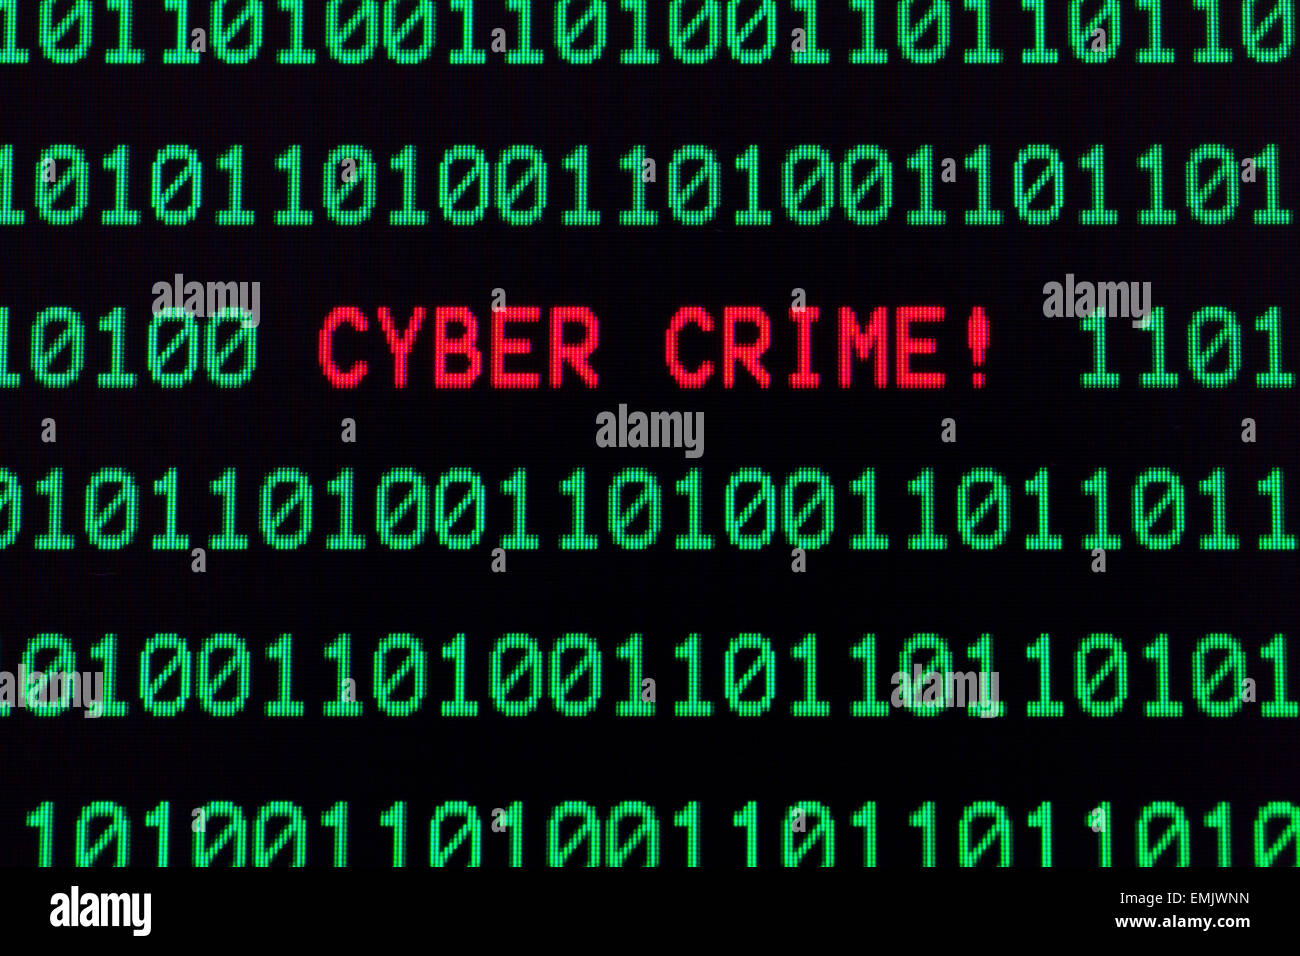 Cyber crime message on computer screen - Stock Image